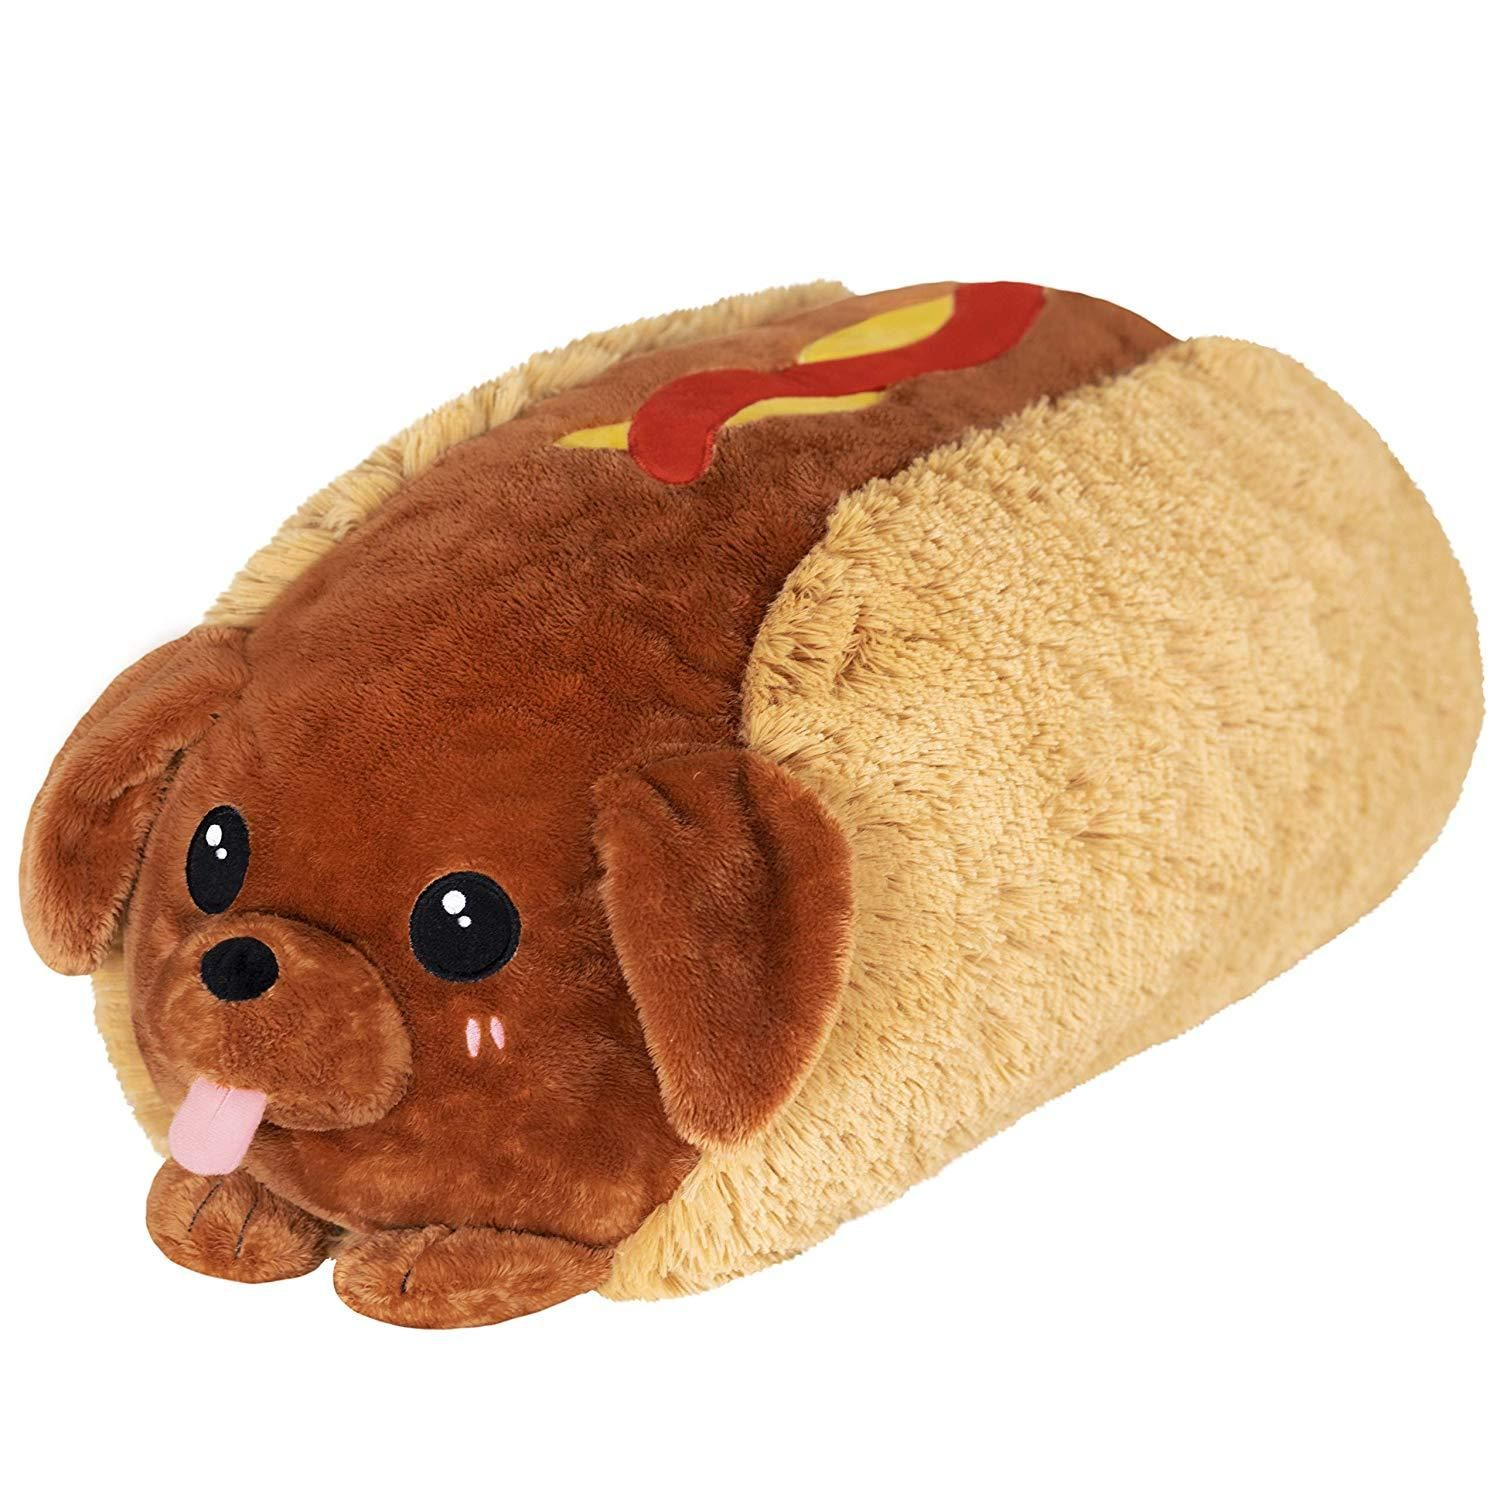 Squishable Dachshund Hot Dog 15 Dachshund Weiner Dog Tiny Puppies